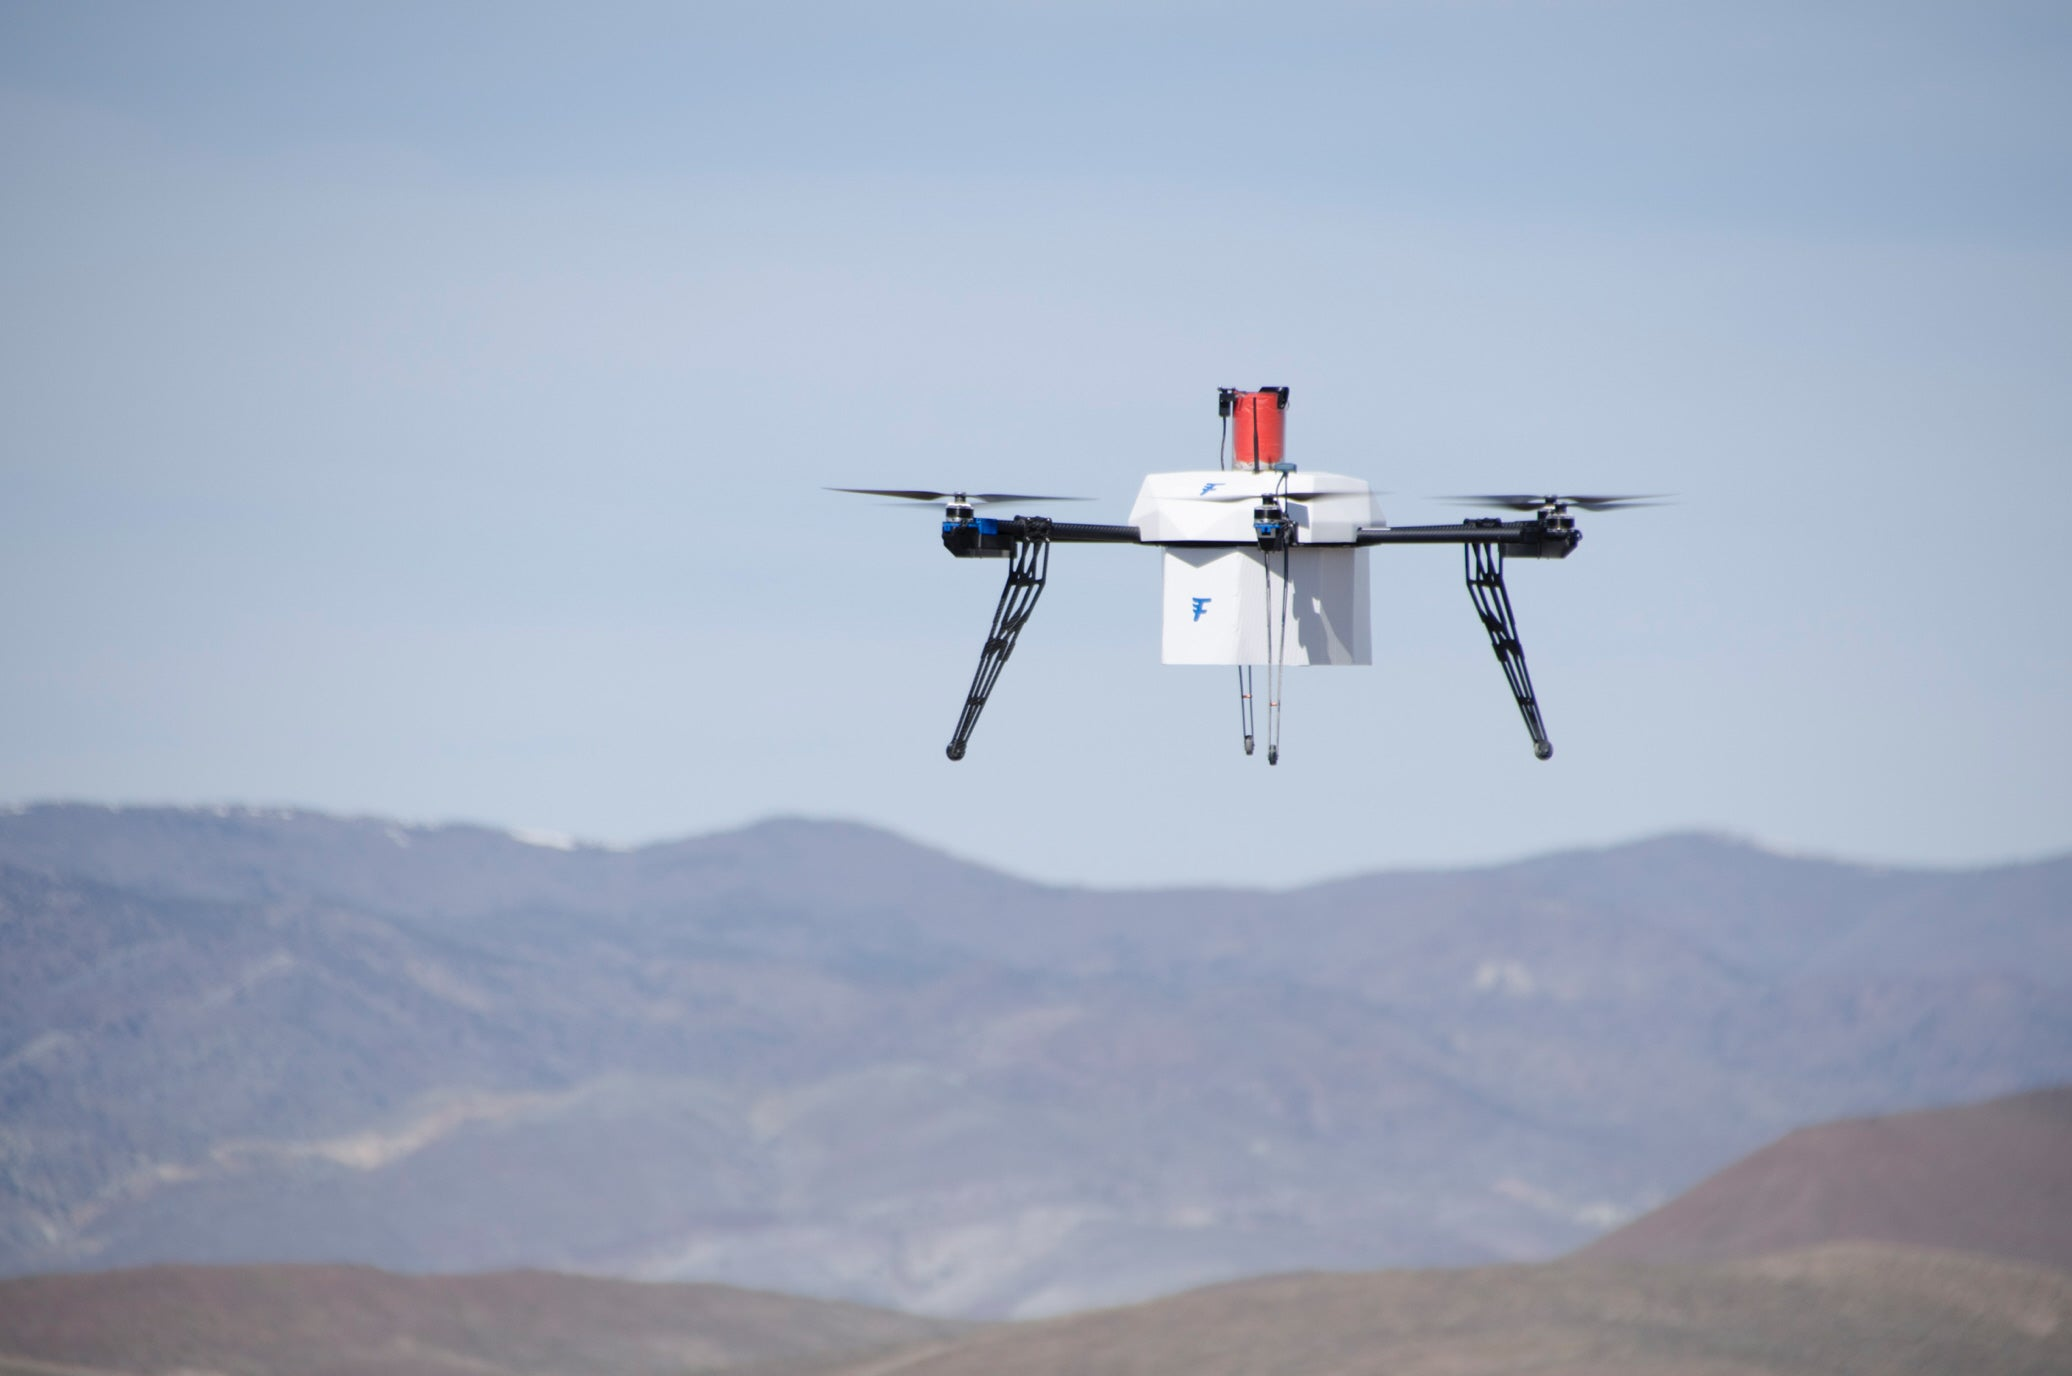 Google To Test Delivery Drones in the U.S.